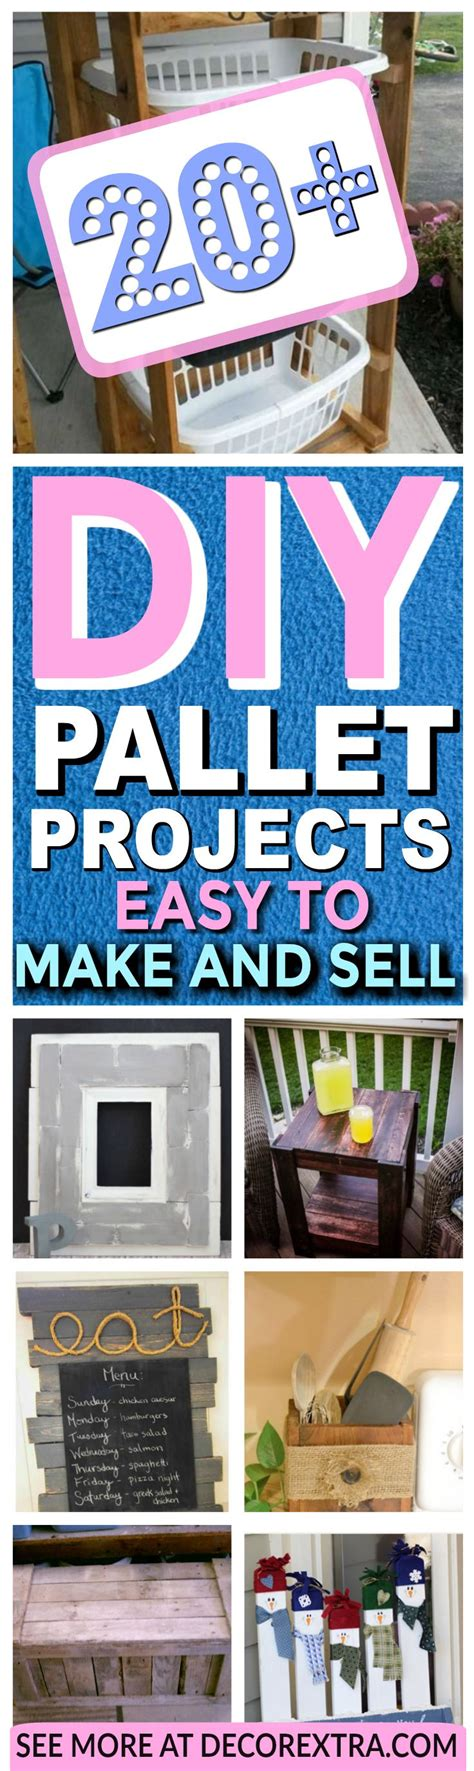 inexpensive diy crafts easy pallet projects and crafts to make and sell cool pallet tables cheap diy ideas craft